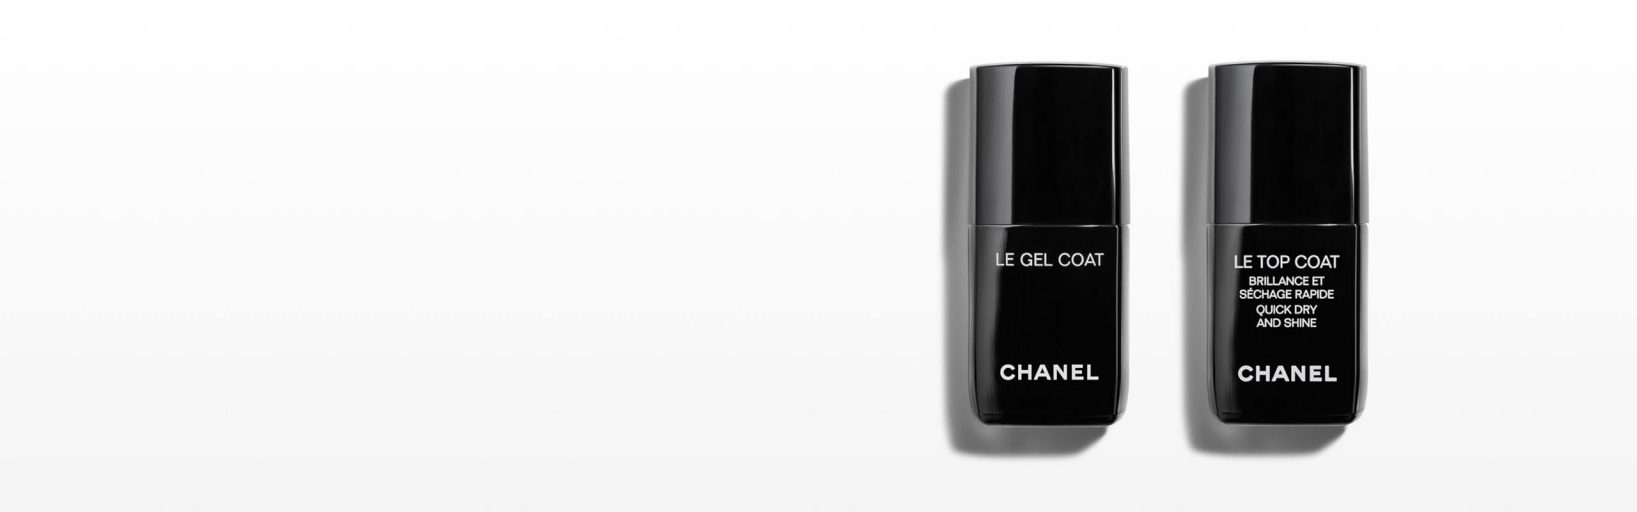 Make-up Nagels CHANEL : Nagellak - Manicure - Speciale edities